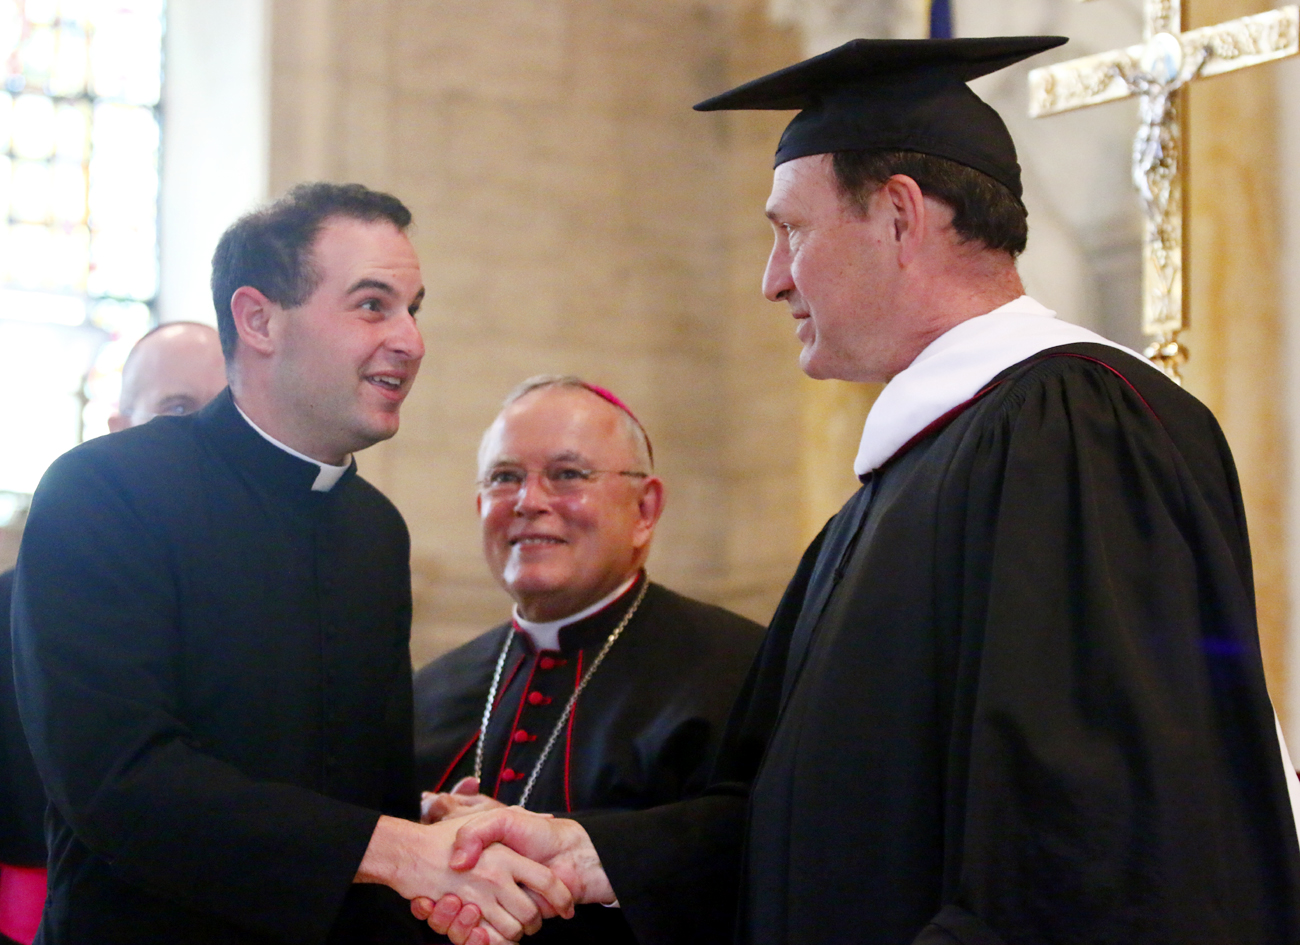 Eric Banecker is congratulated by Justice Samuel Alito, Jr. at Saint Charles Borrmeo Seminary on May 17.